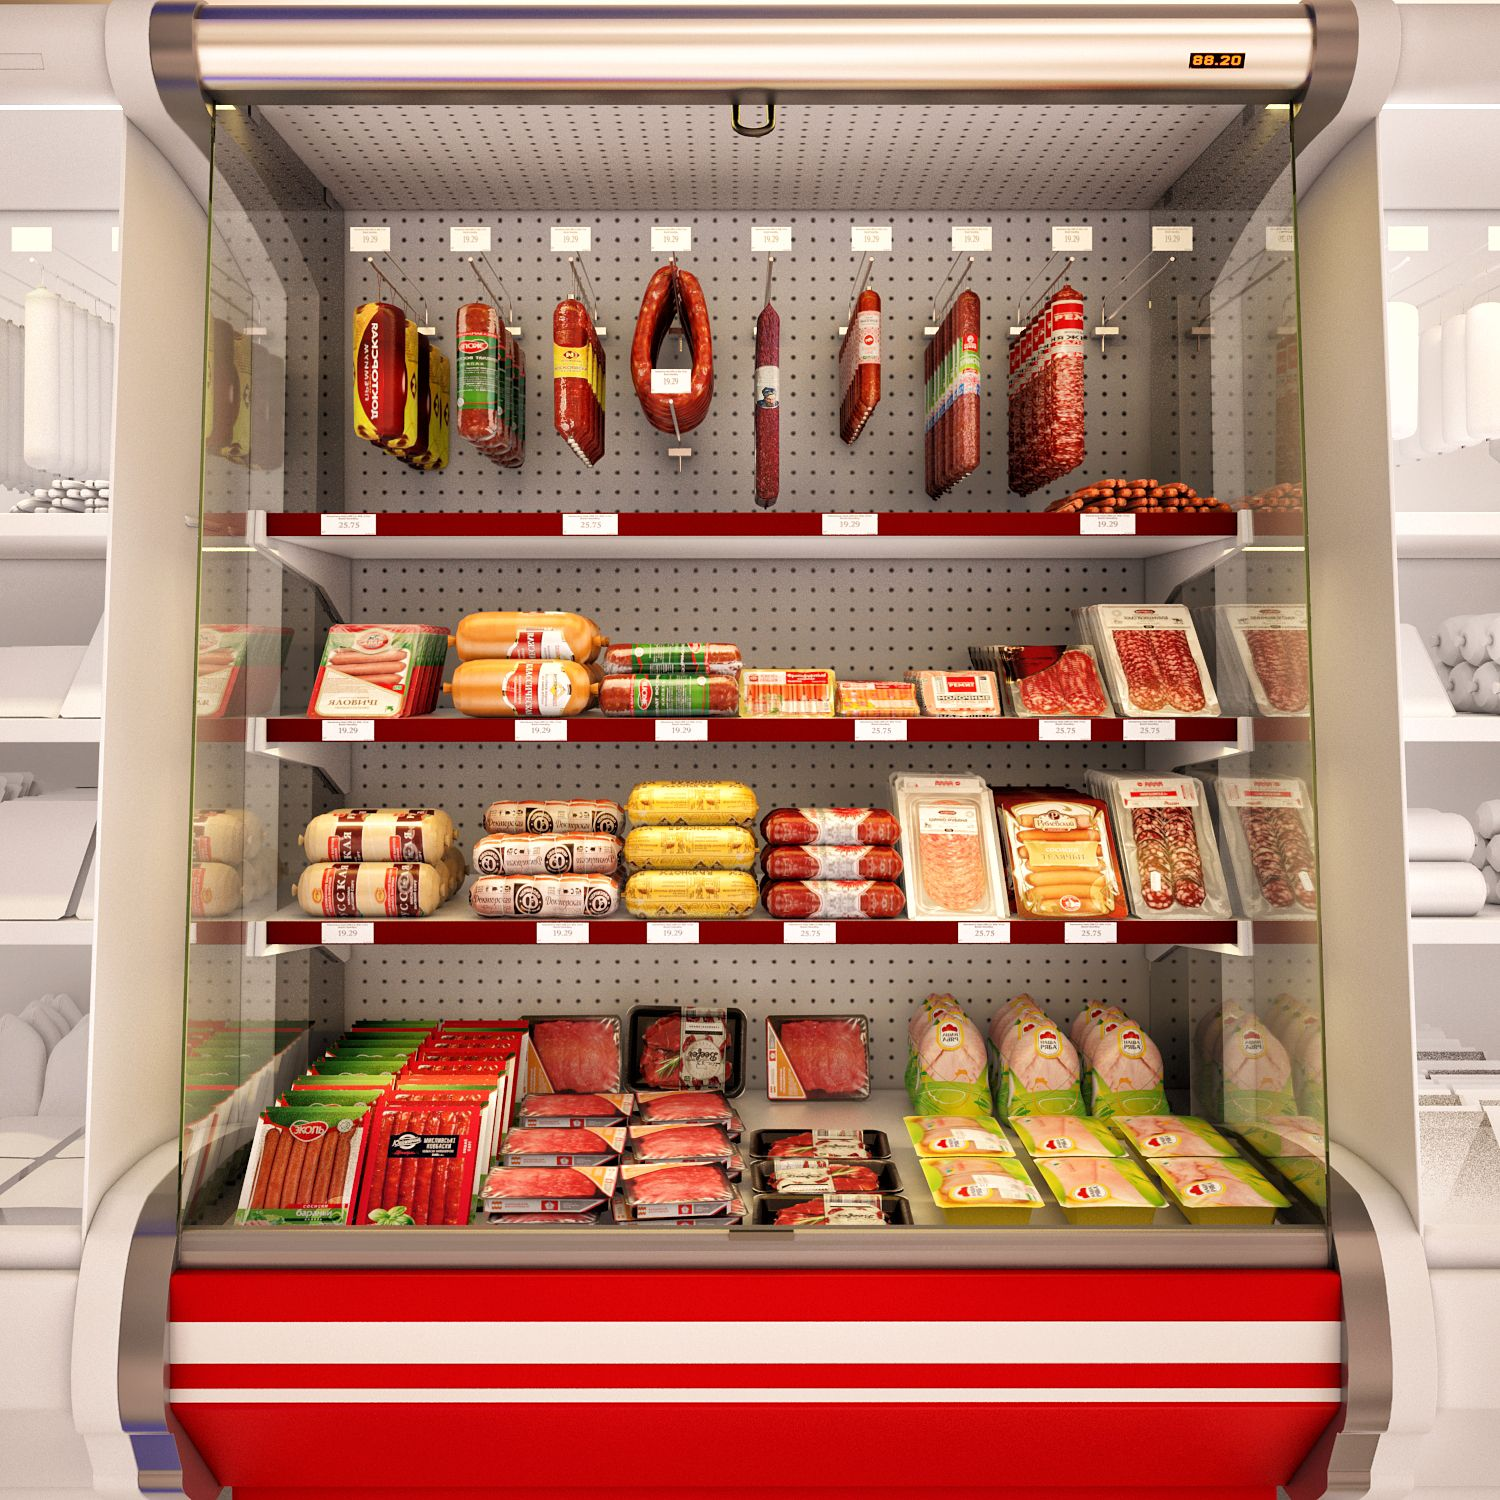 3d models Shop Refrigerated showcase Fortune 2